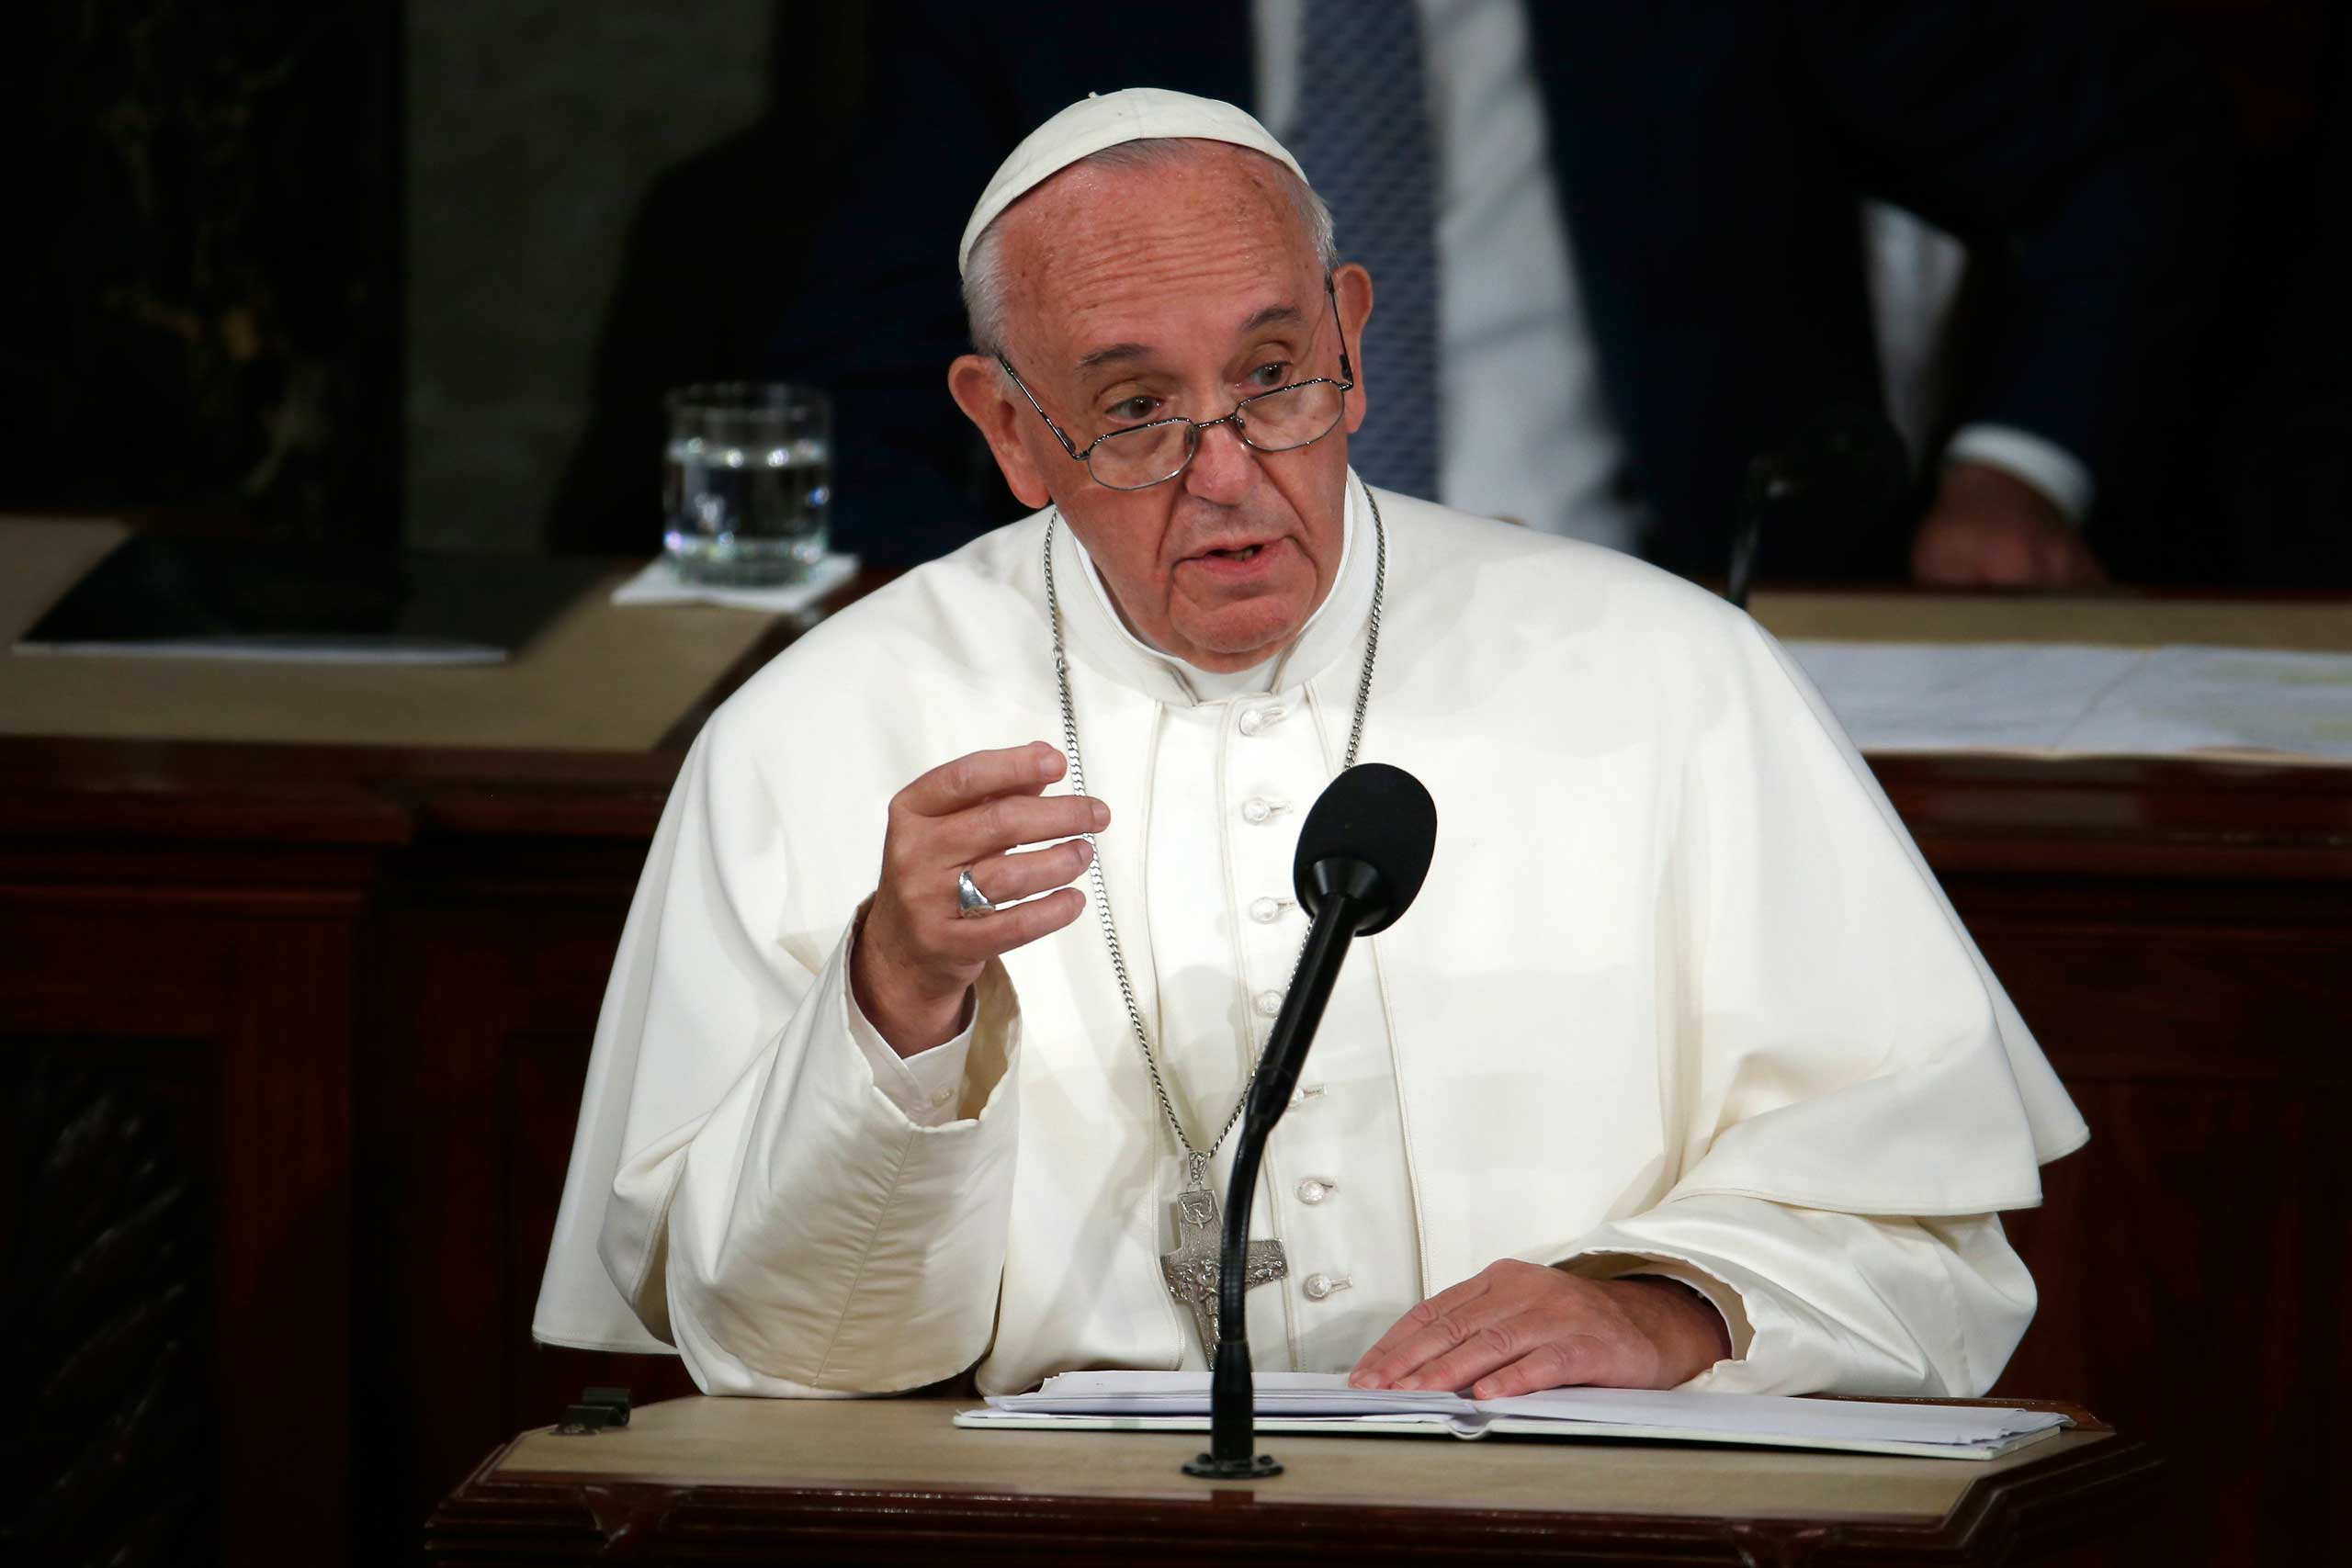 Pope Francis addresses a joint meeting of Congress on Capitol Hill  in Washington, making history as the first pontiff to do so, Sept. 24, 2015,